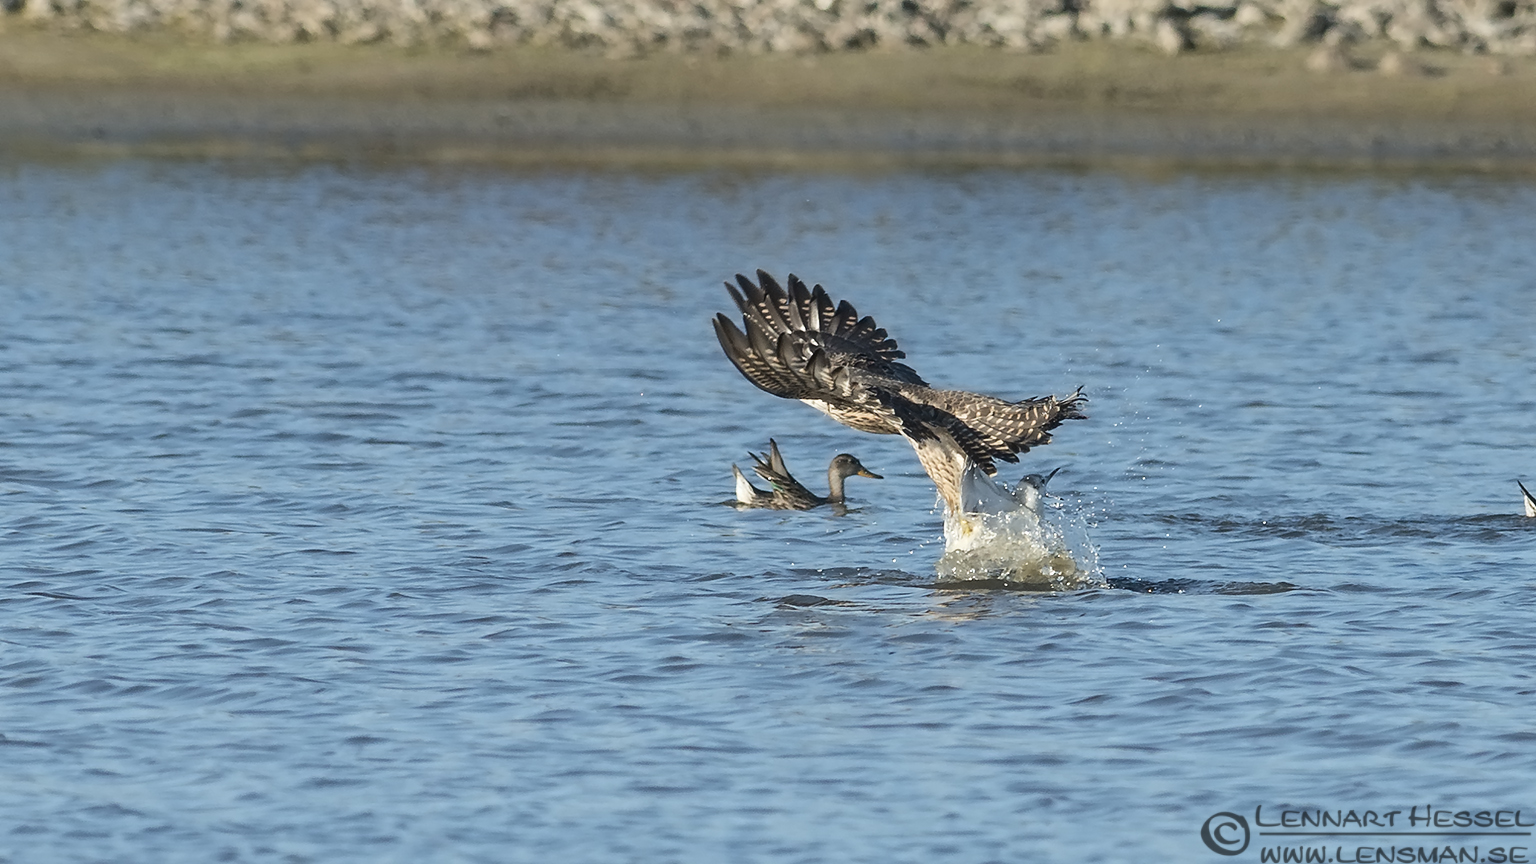 Peregrine Falcon striking a Gull hectic